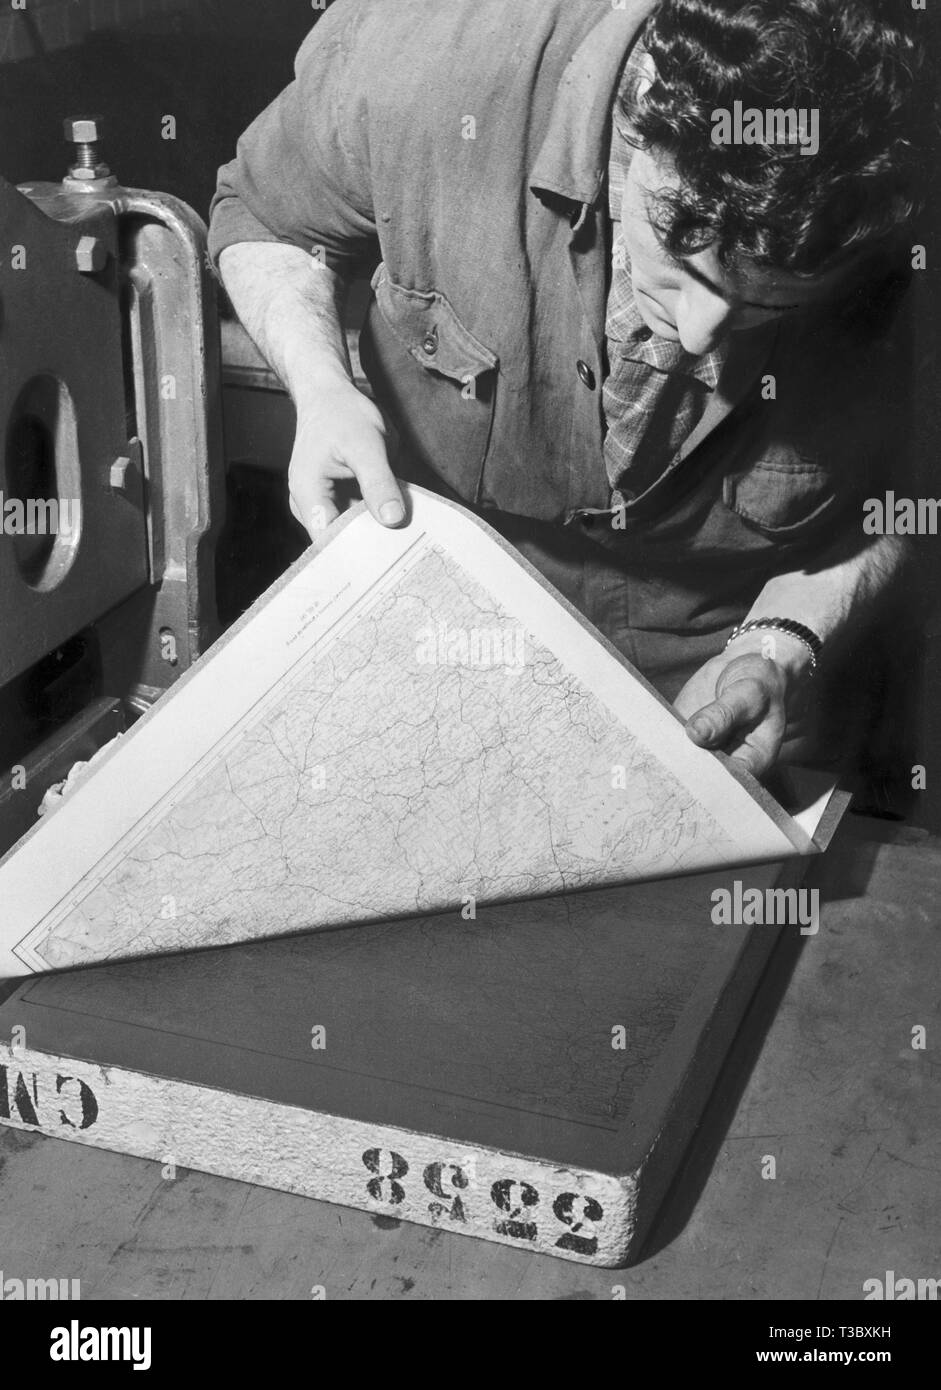 cartographic office, execution of a cast from a lithographic stone, 1954 - Stock Image